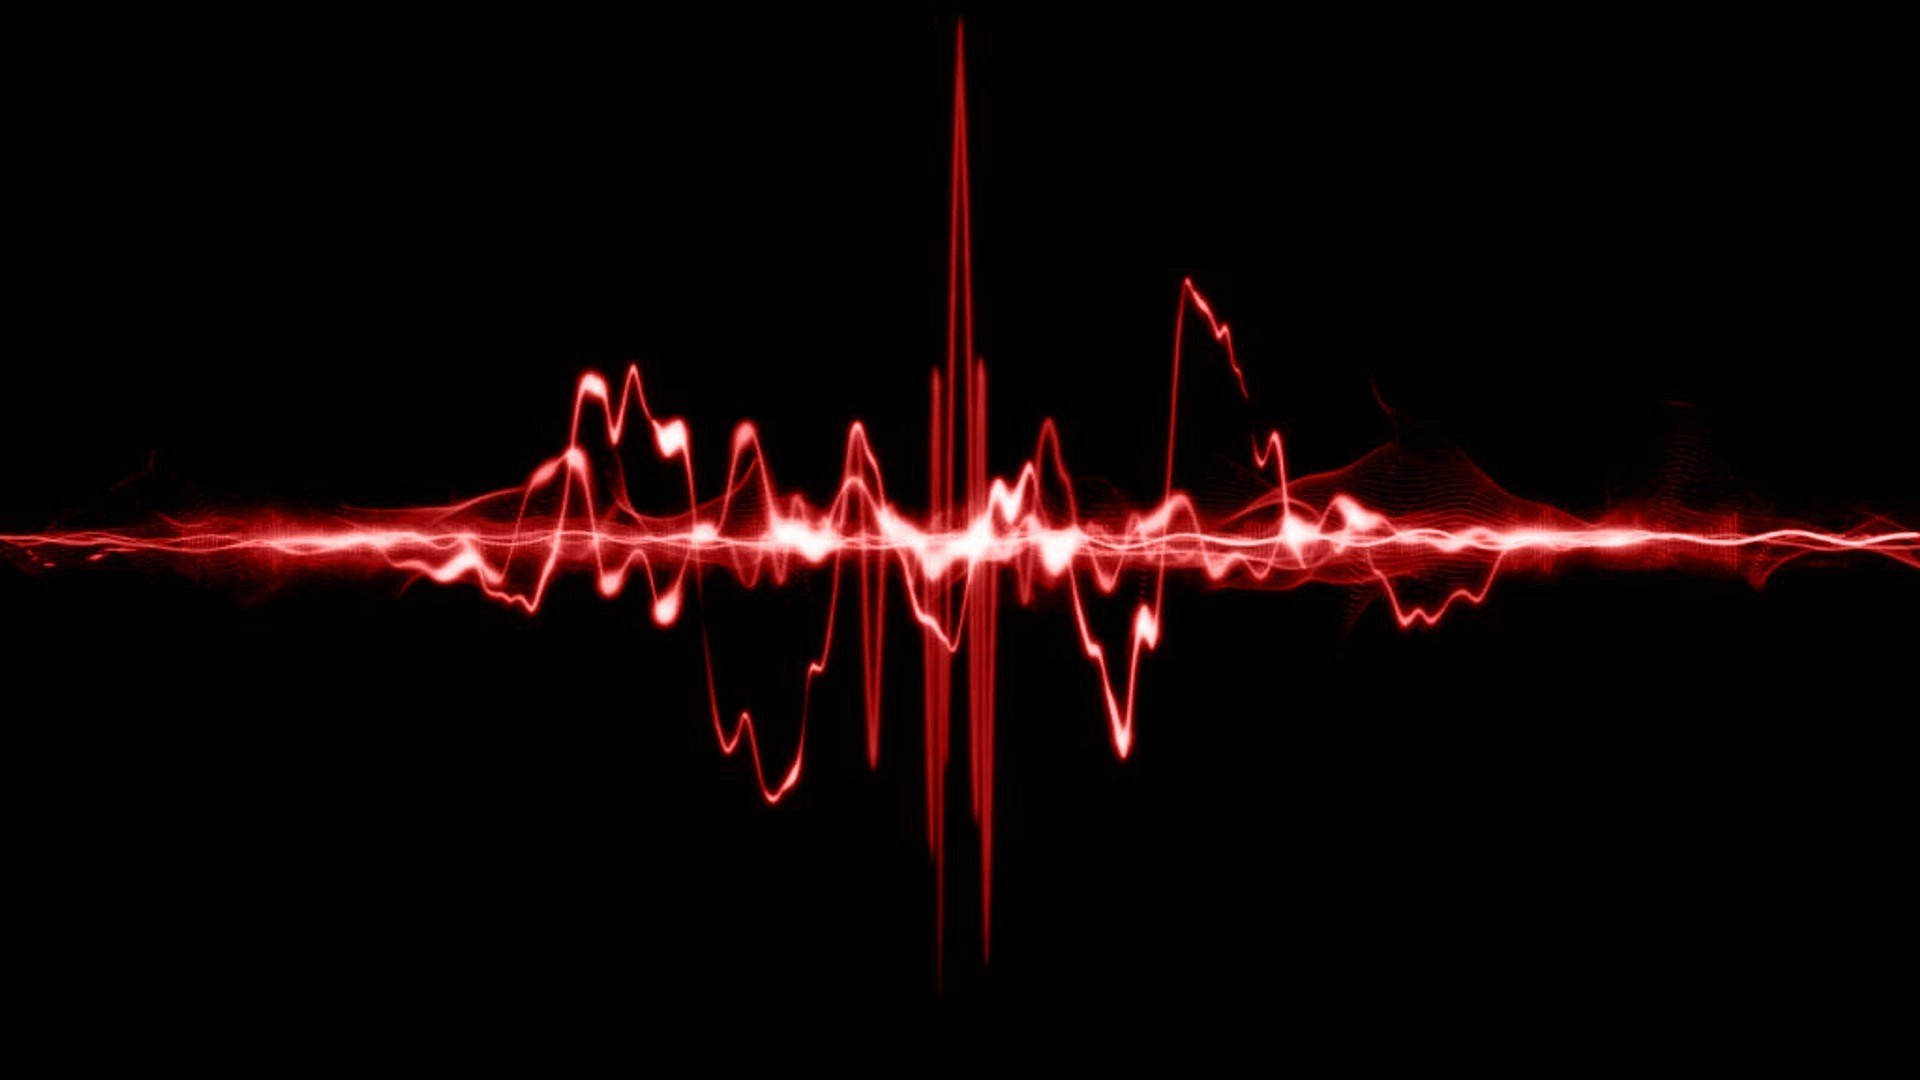 Red sound waves wallpaper 14398 1920x1080